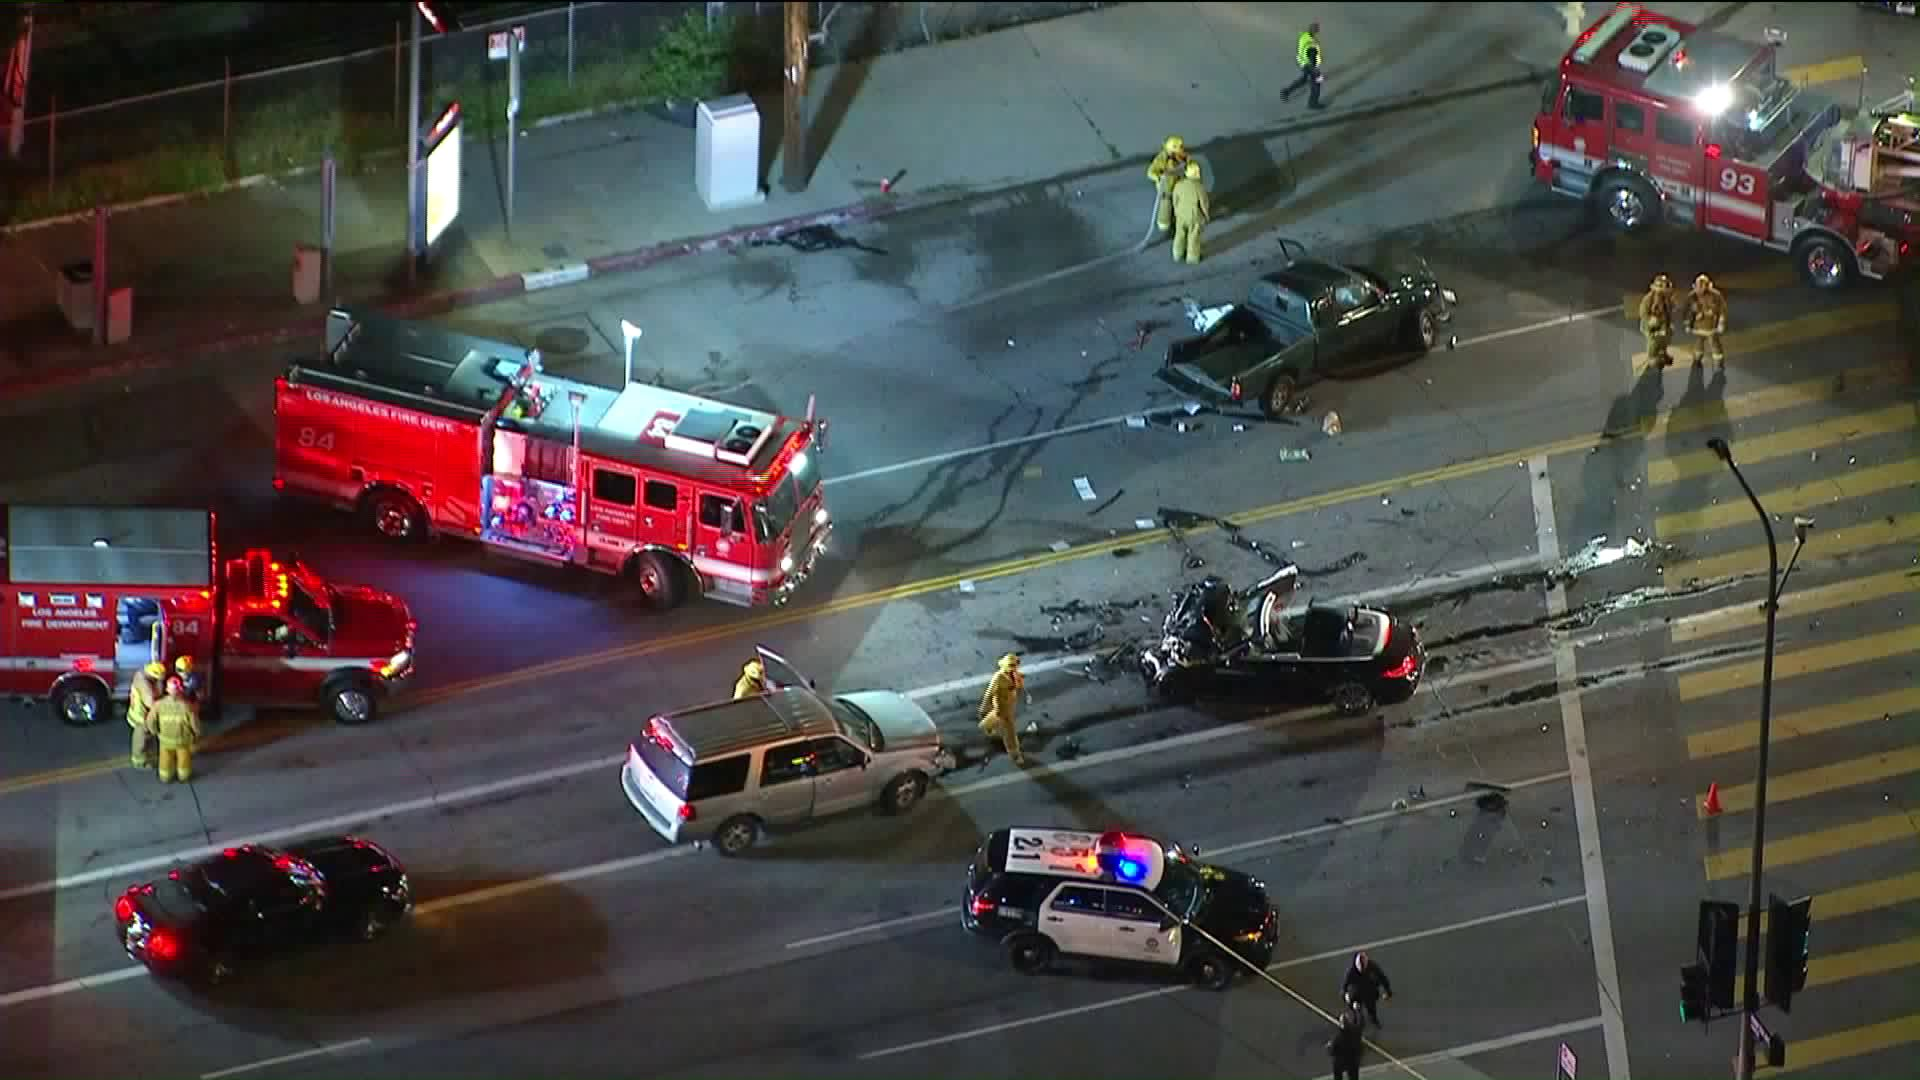 The scene after a fatal multi-vehicle wreck in Woodland Hills on March 29, 2019. (Credit: KTLA)